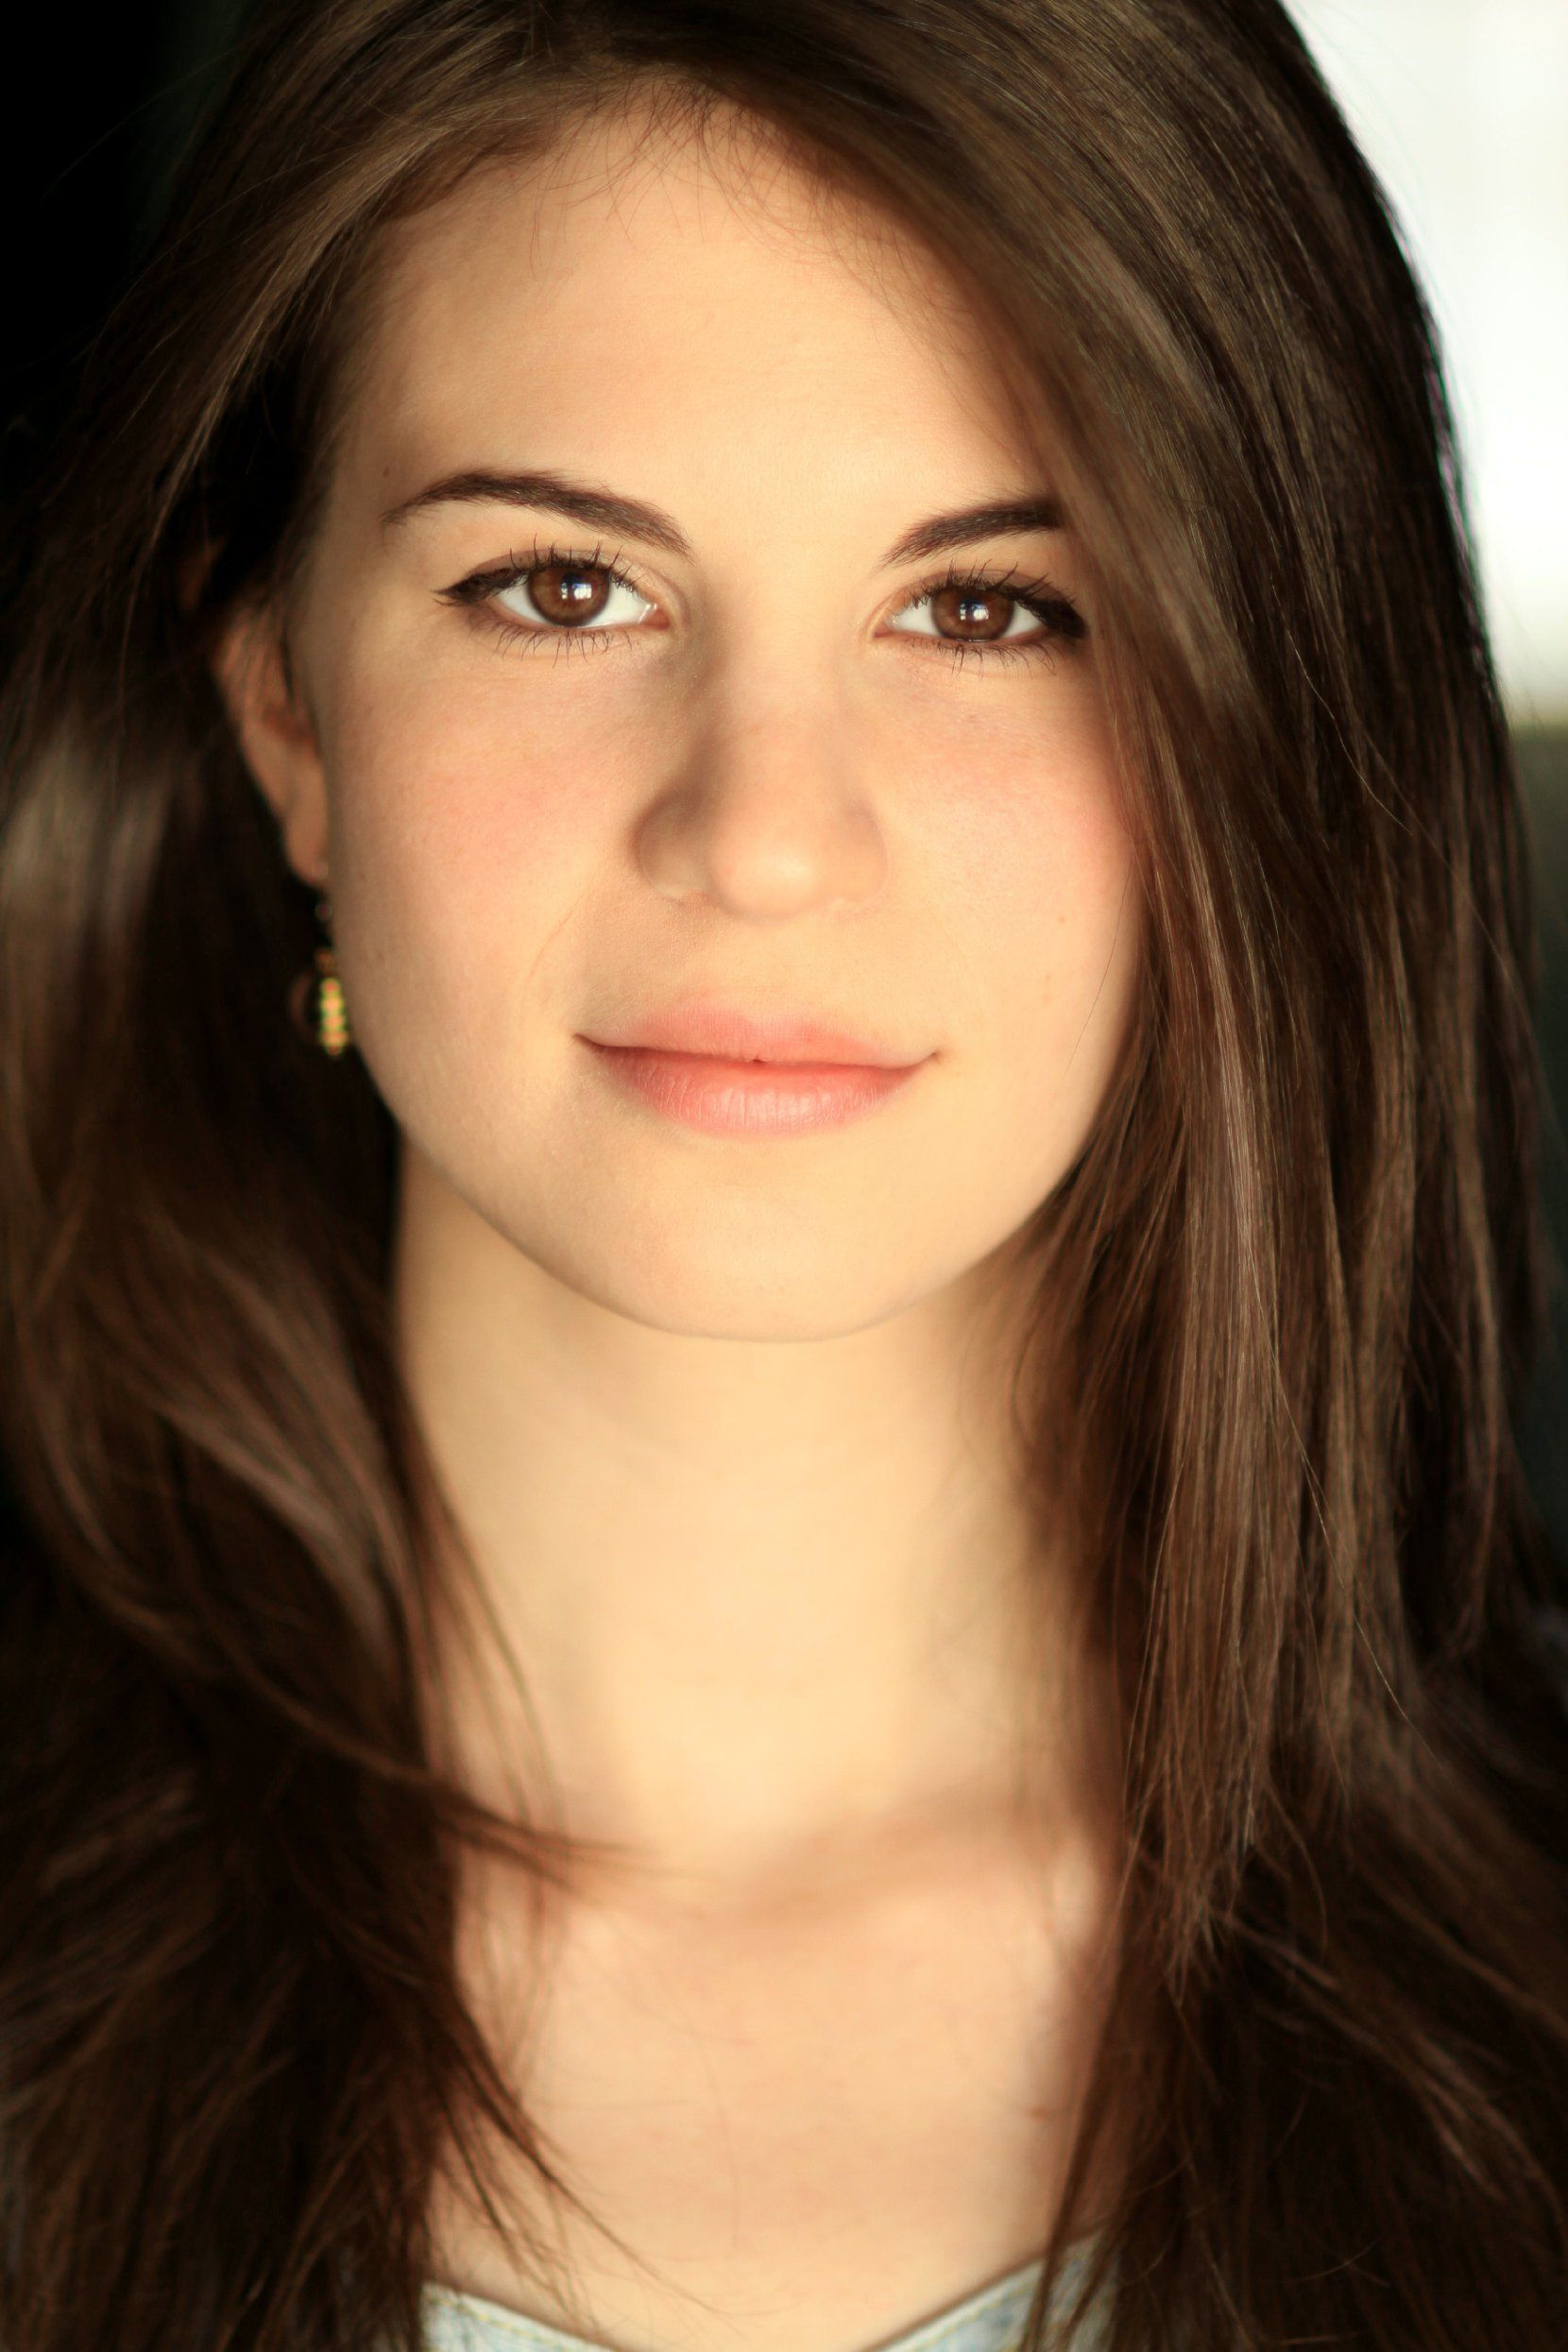 Hot TV Babe Of The WeekAmelia Rose Blaire